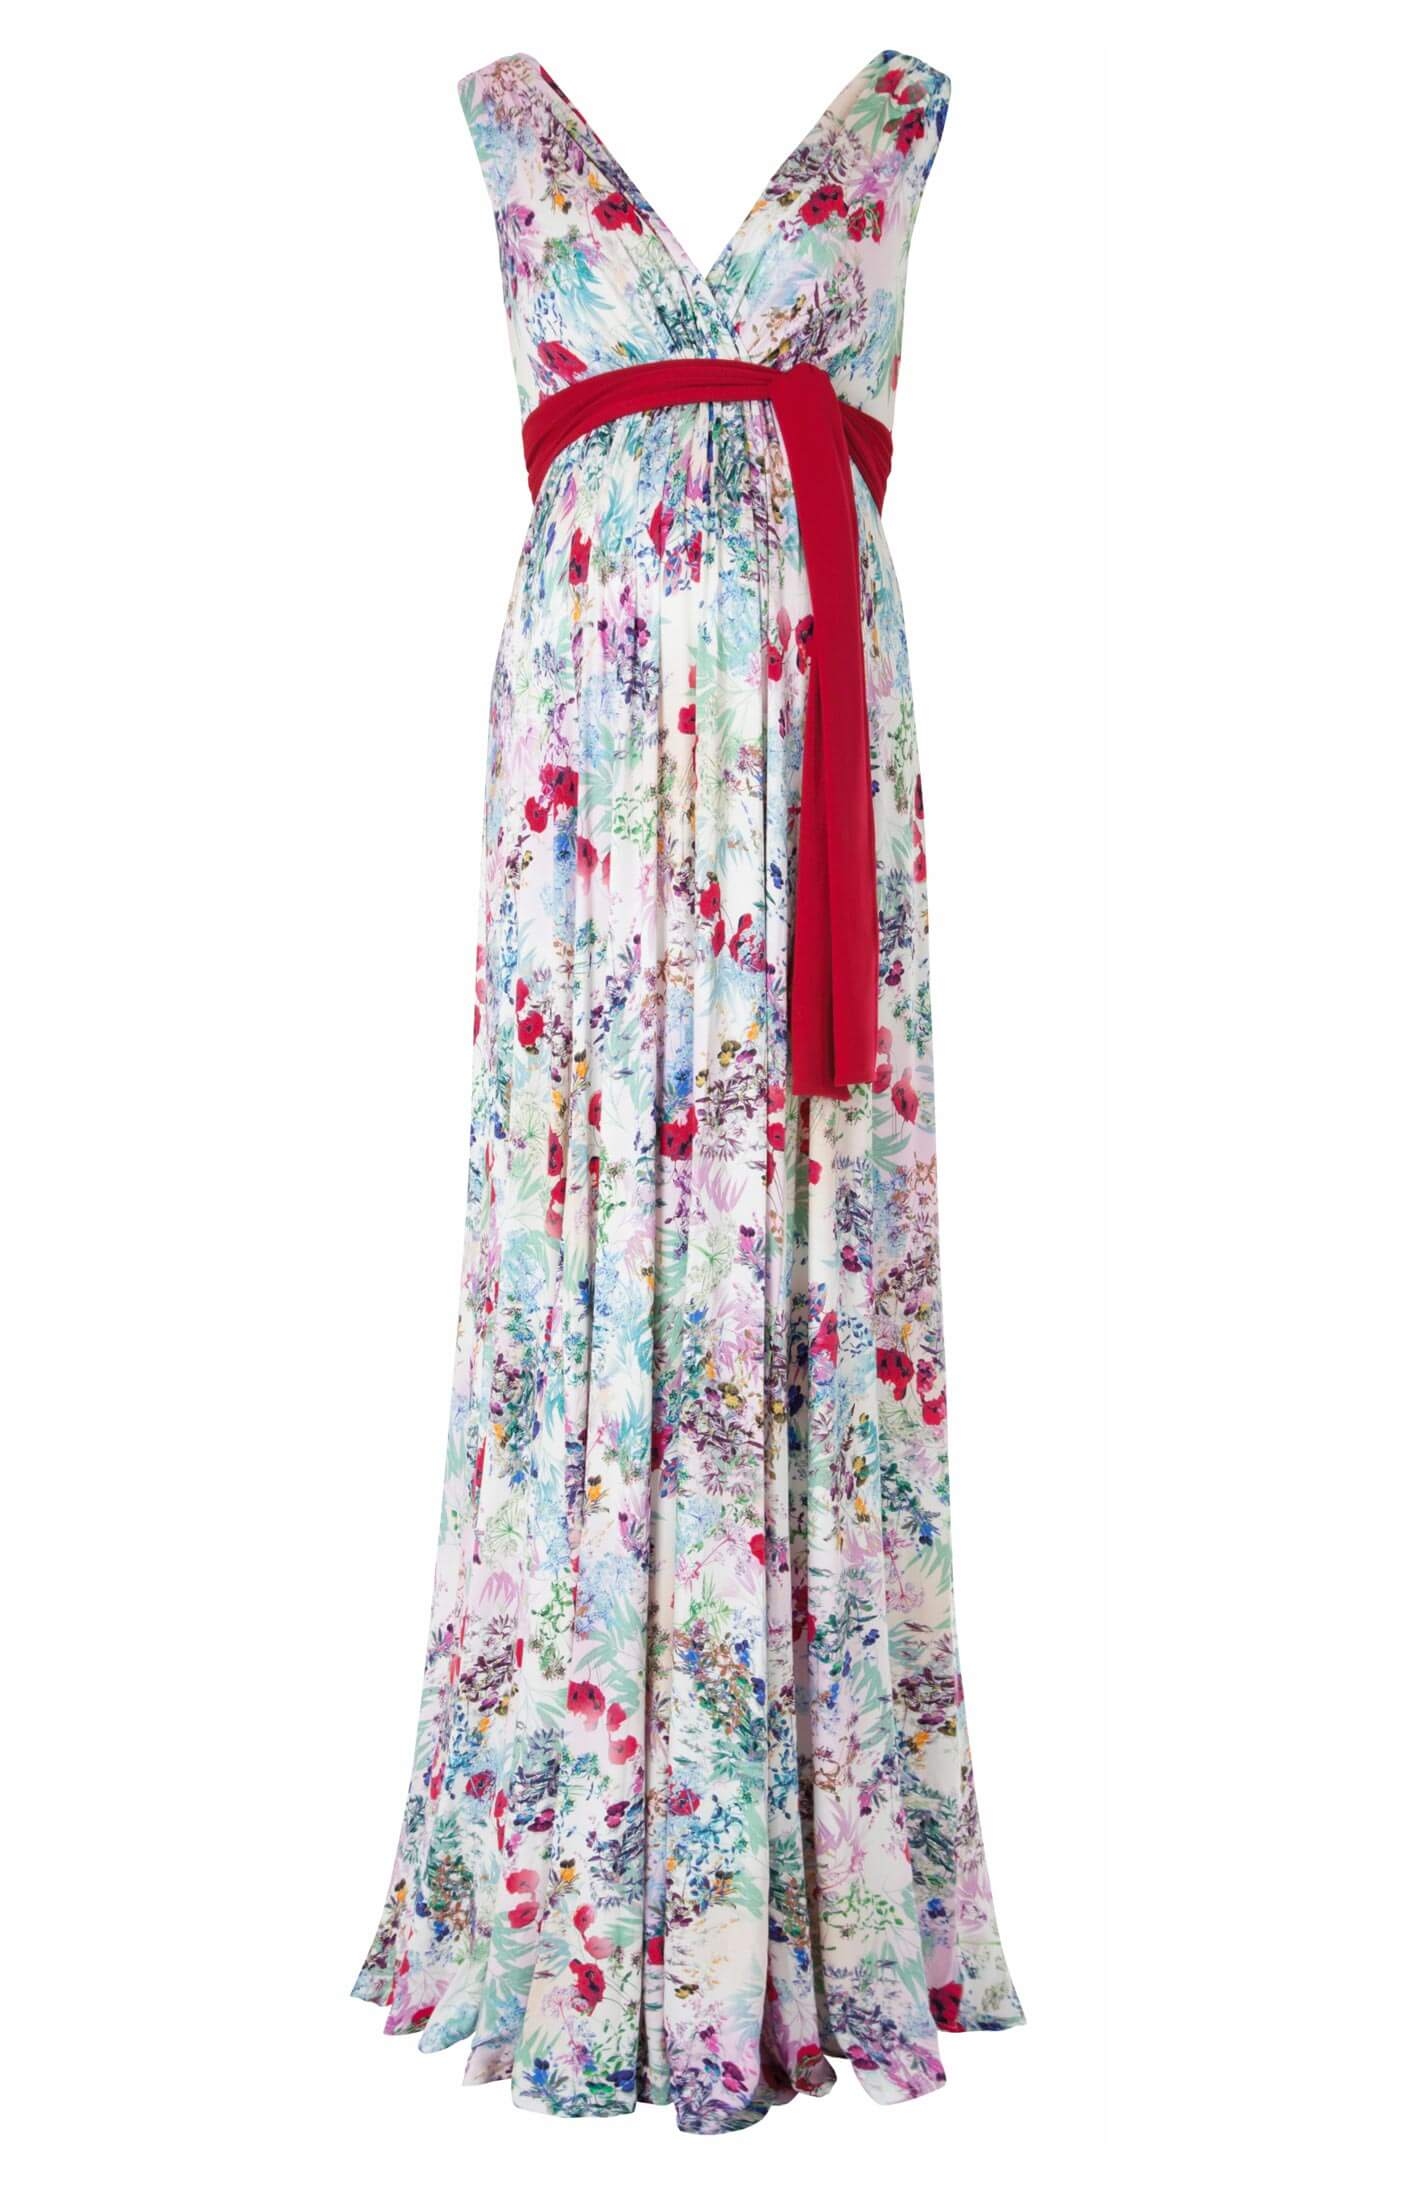 20e93115709f8 Anastasia Maternity Long Maxi Dress in Poppy floral print - Maternity  Wedding Dresses, Evening Wear and Party Clothes by Tiffany Rose UK